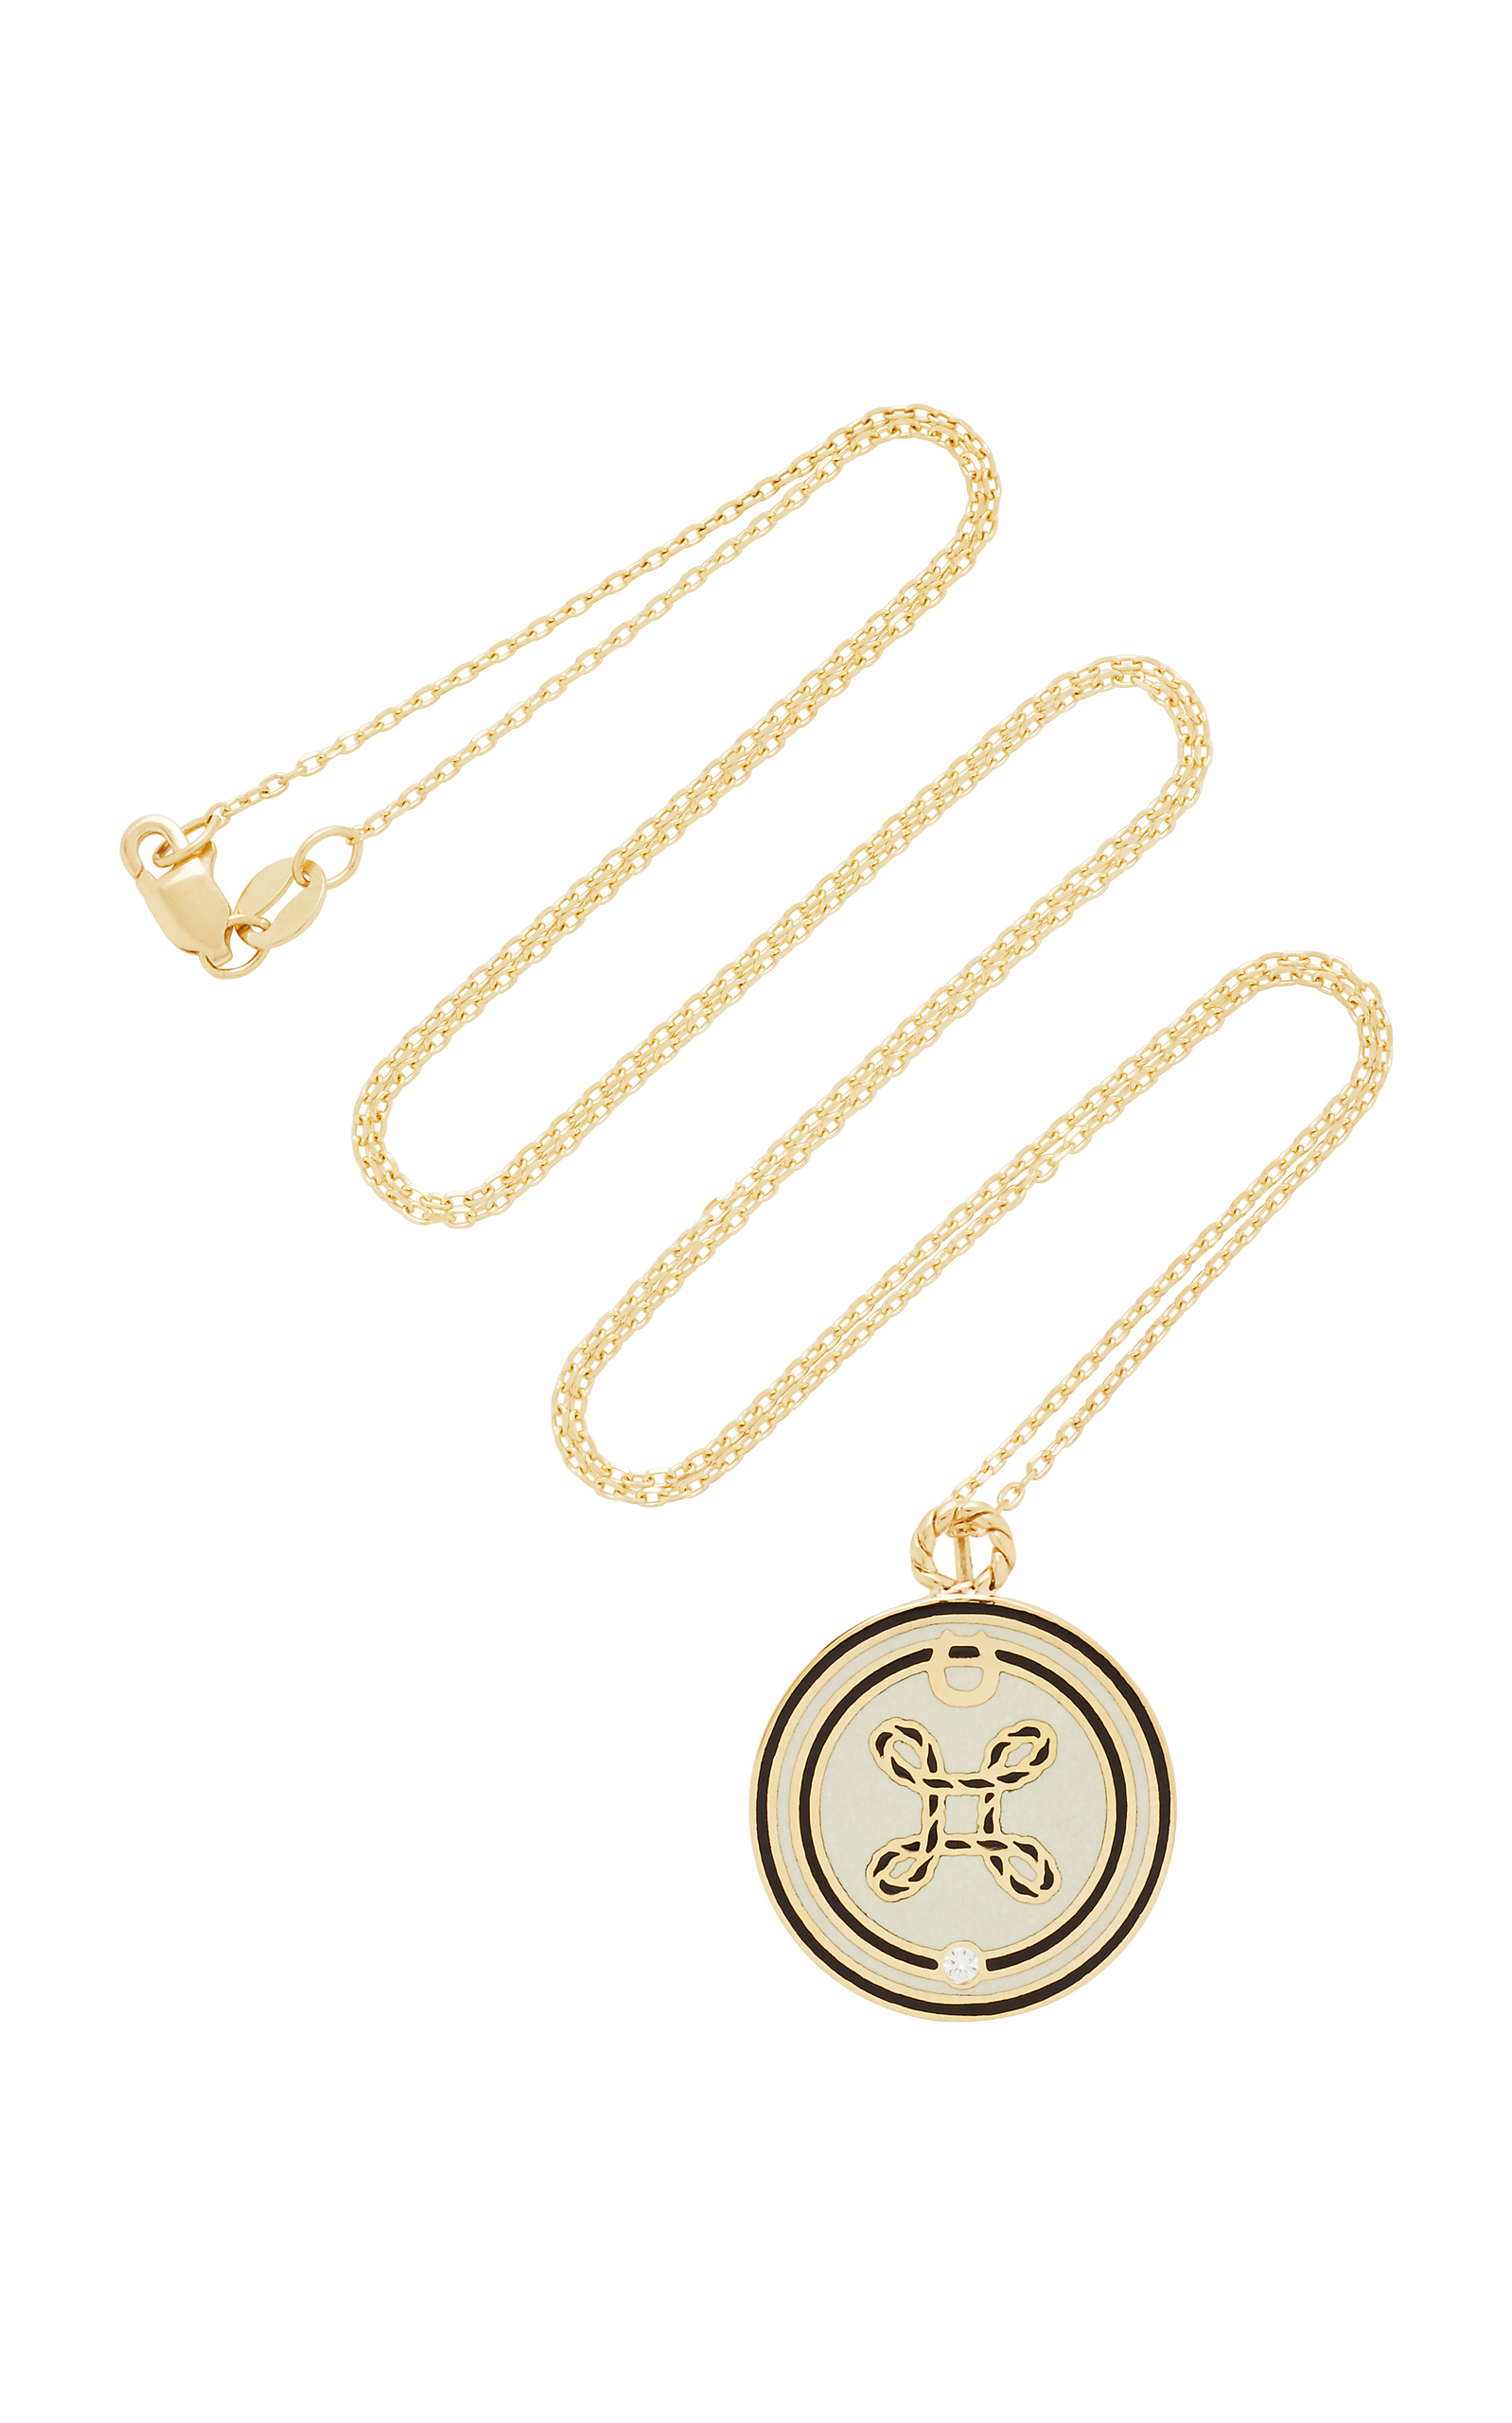 True Lover's Knot Champleve Symbol On Thread Chain